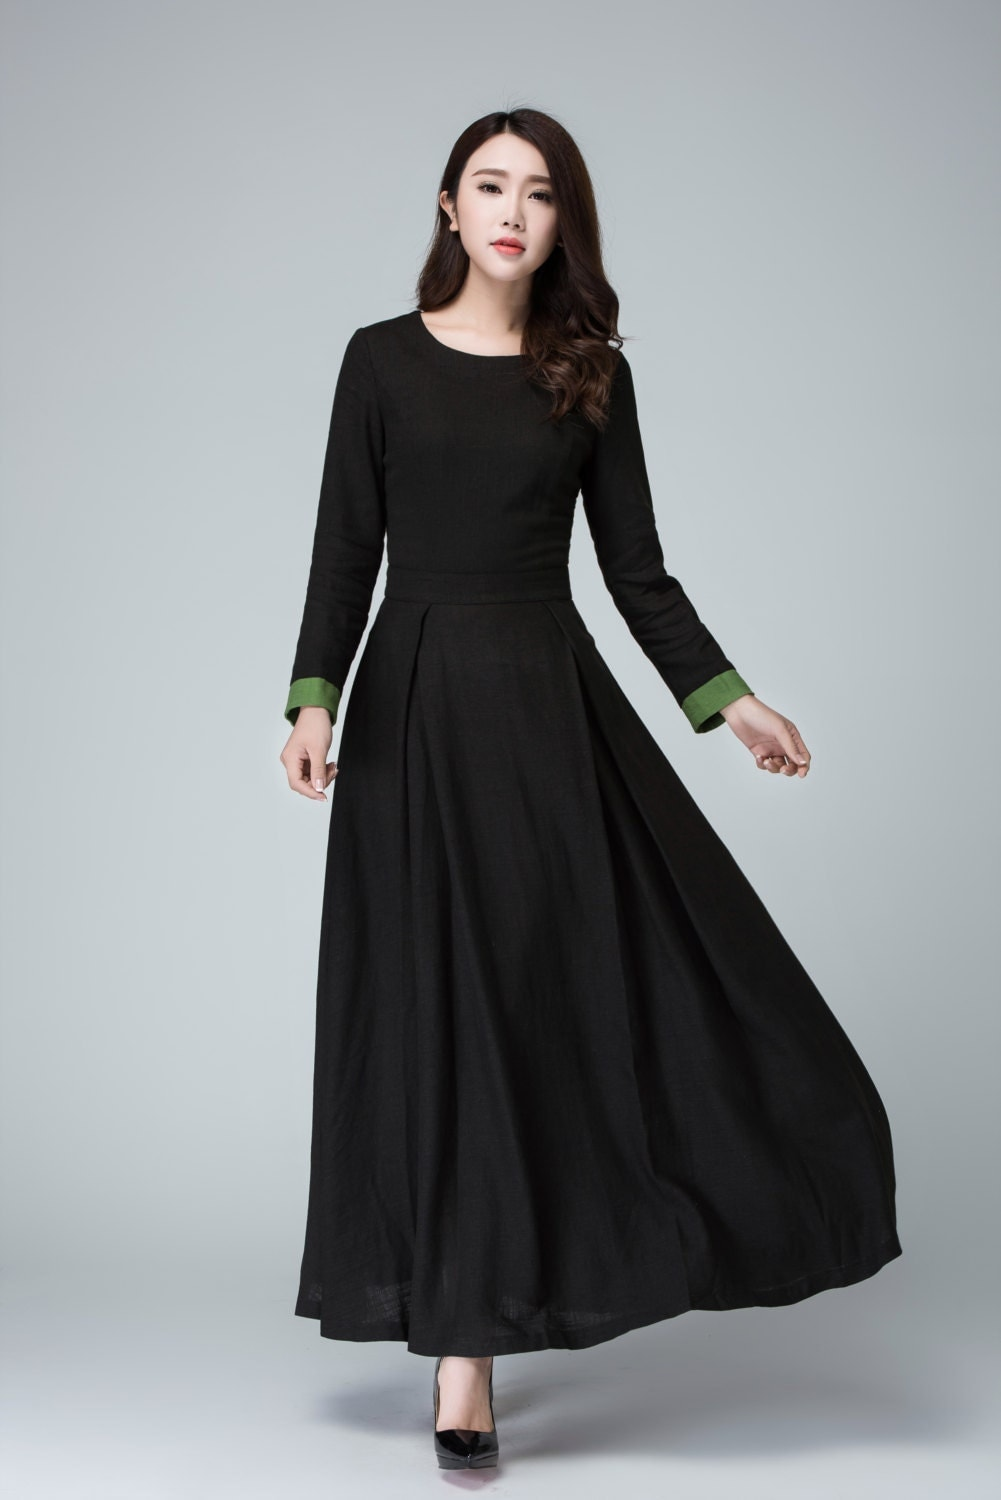 Black dress long sleeve dress prom dress linen dress maxi